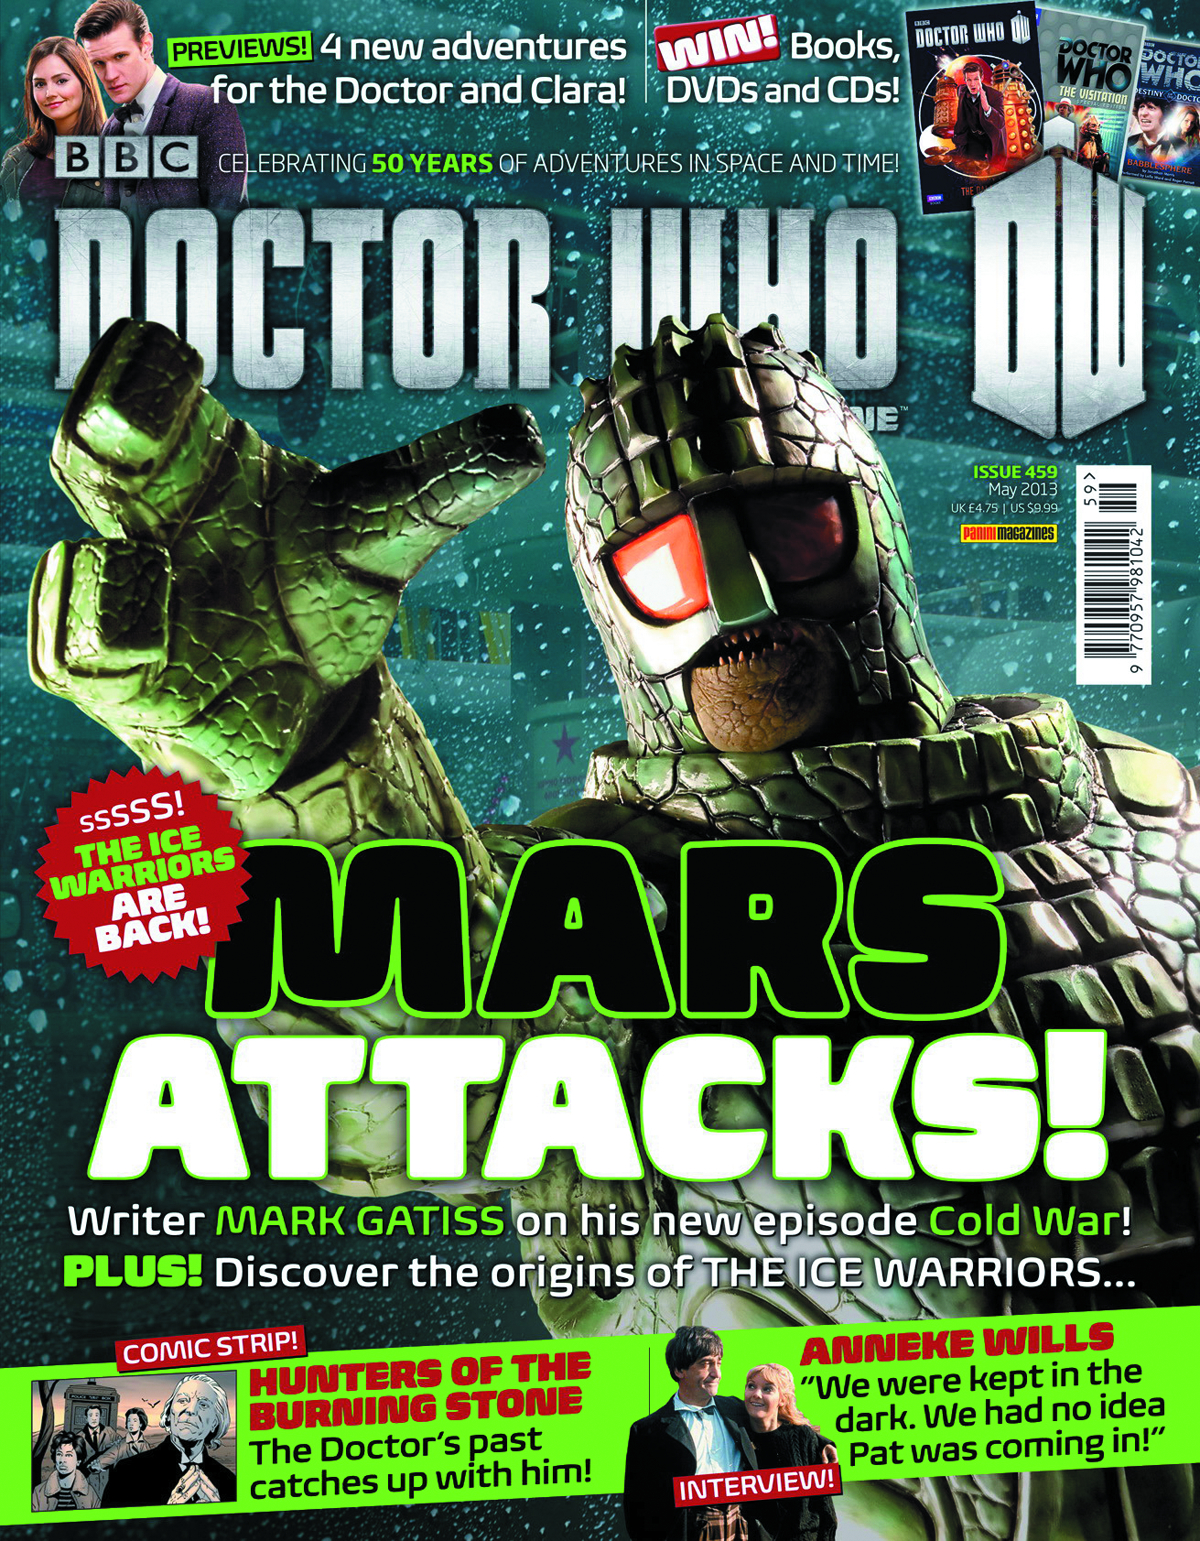 DOCTOR WHO MAGAZINE #463